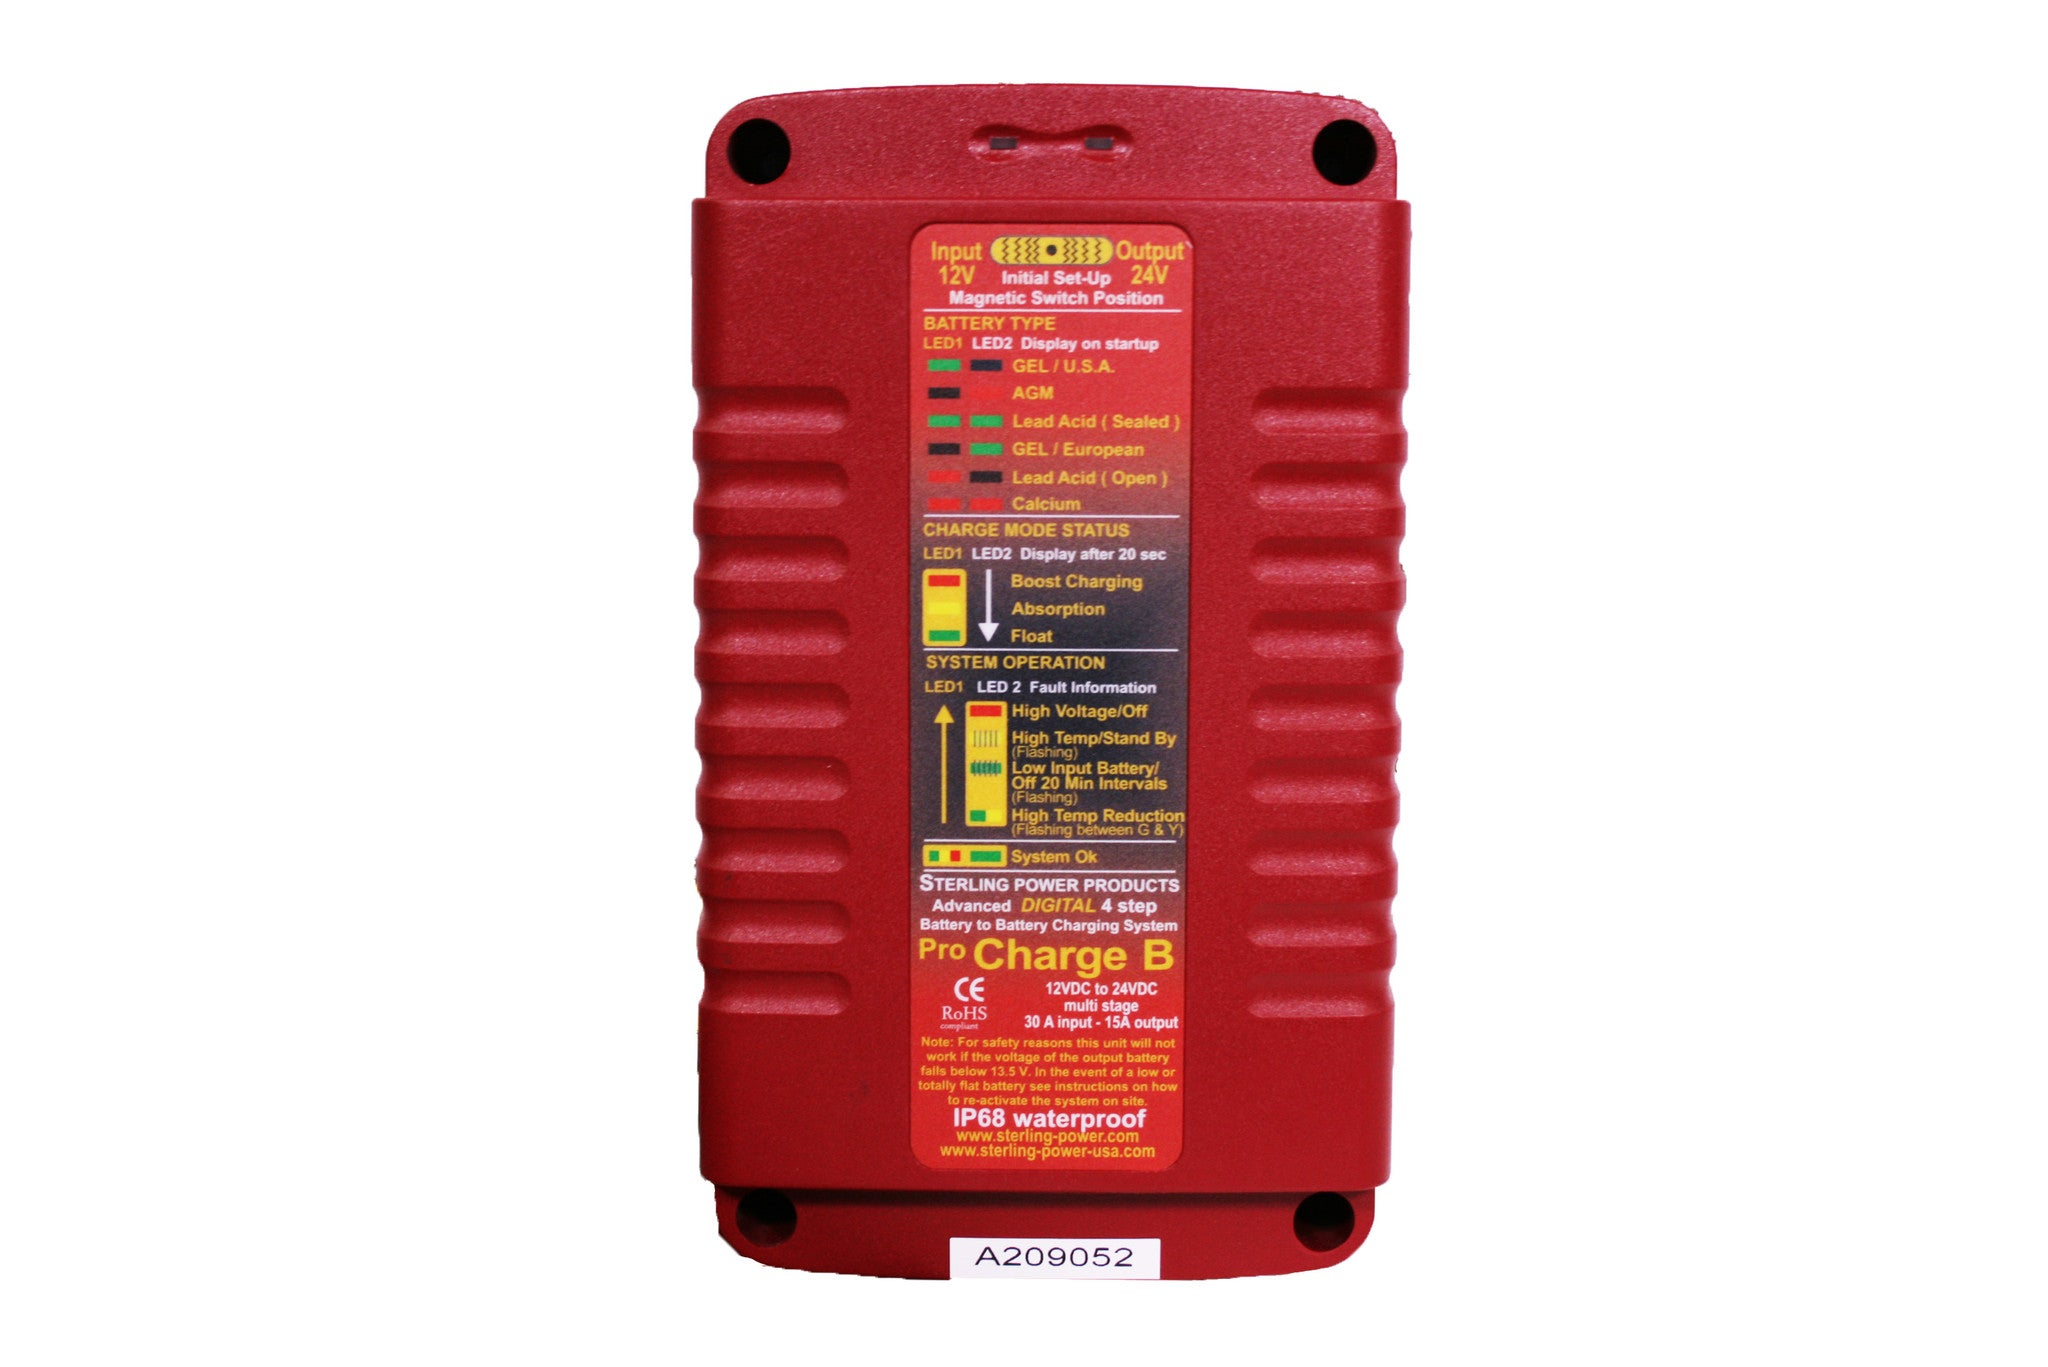 Battery To Chargers 20a 12v 24v 36v Pro Charge B Bbw Minn Kota 36 Volt Wiring Diagram Waterproof